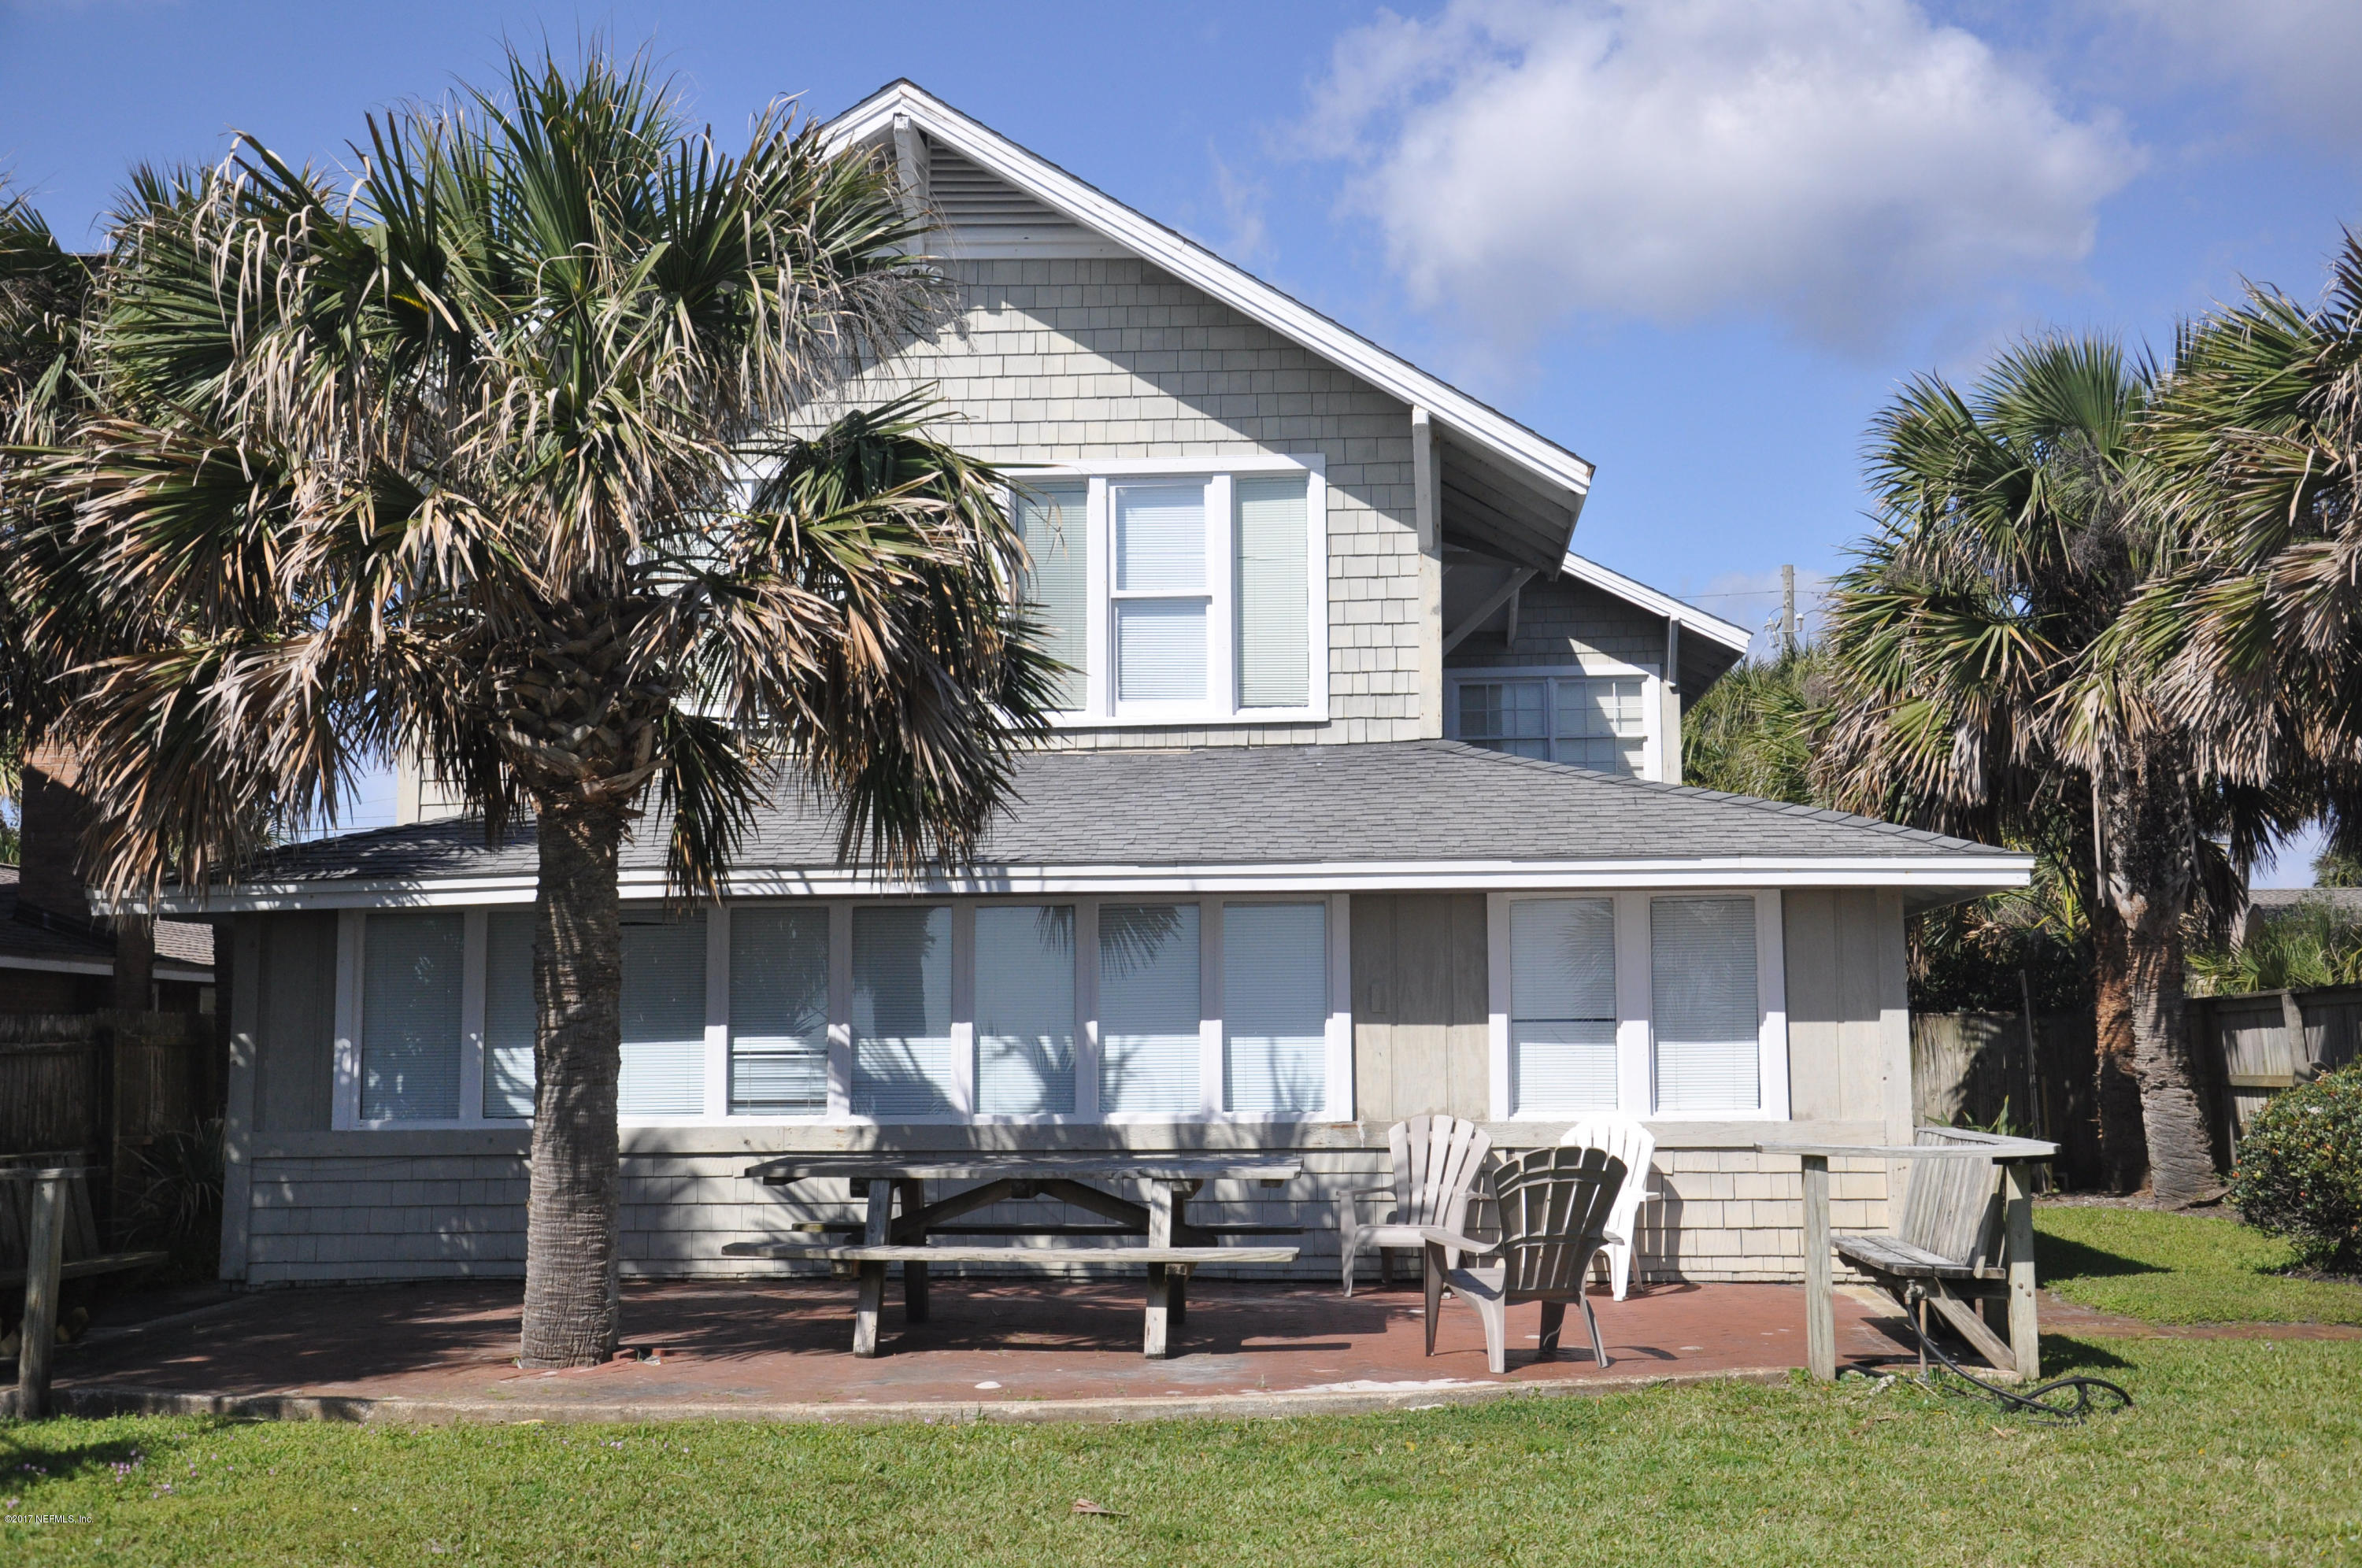 99 BEACH, ATLANTIC BEACH, FLORIDA 32233, 4 Bedrooms Bedrooms, ,3 BathroomsBathrooms,Rental,For Rent,BEACH,897610